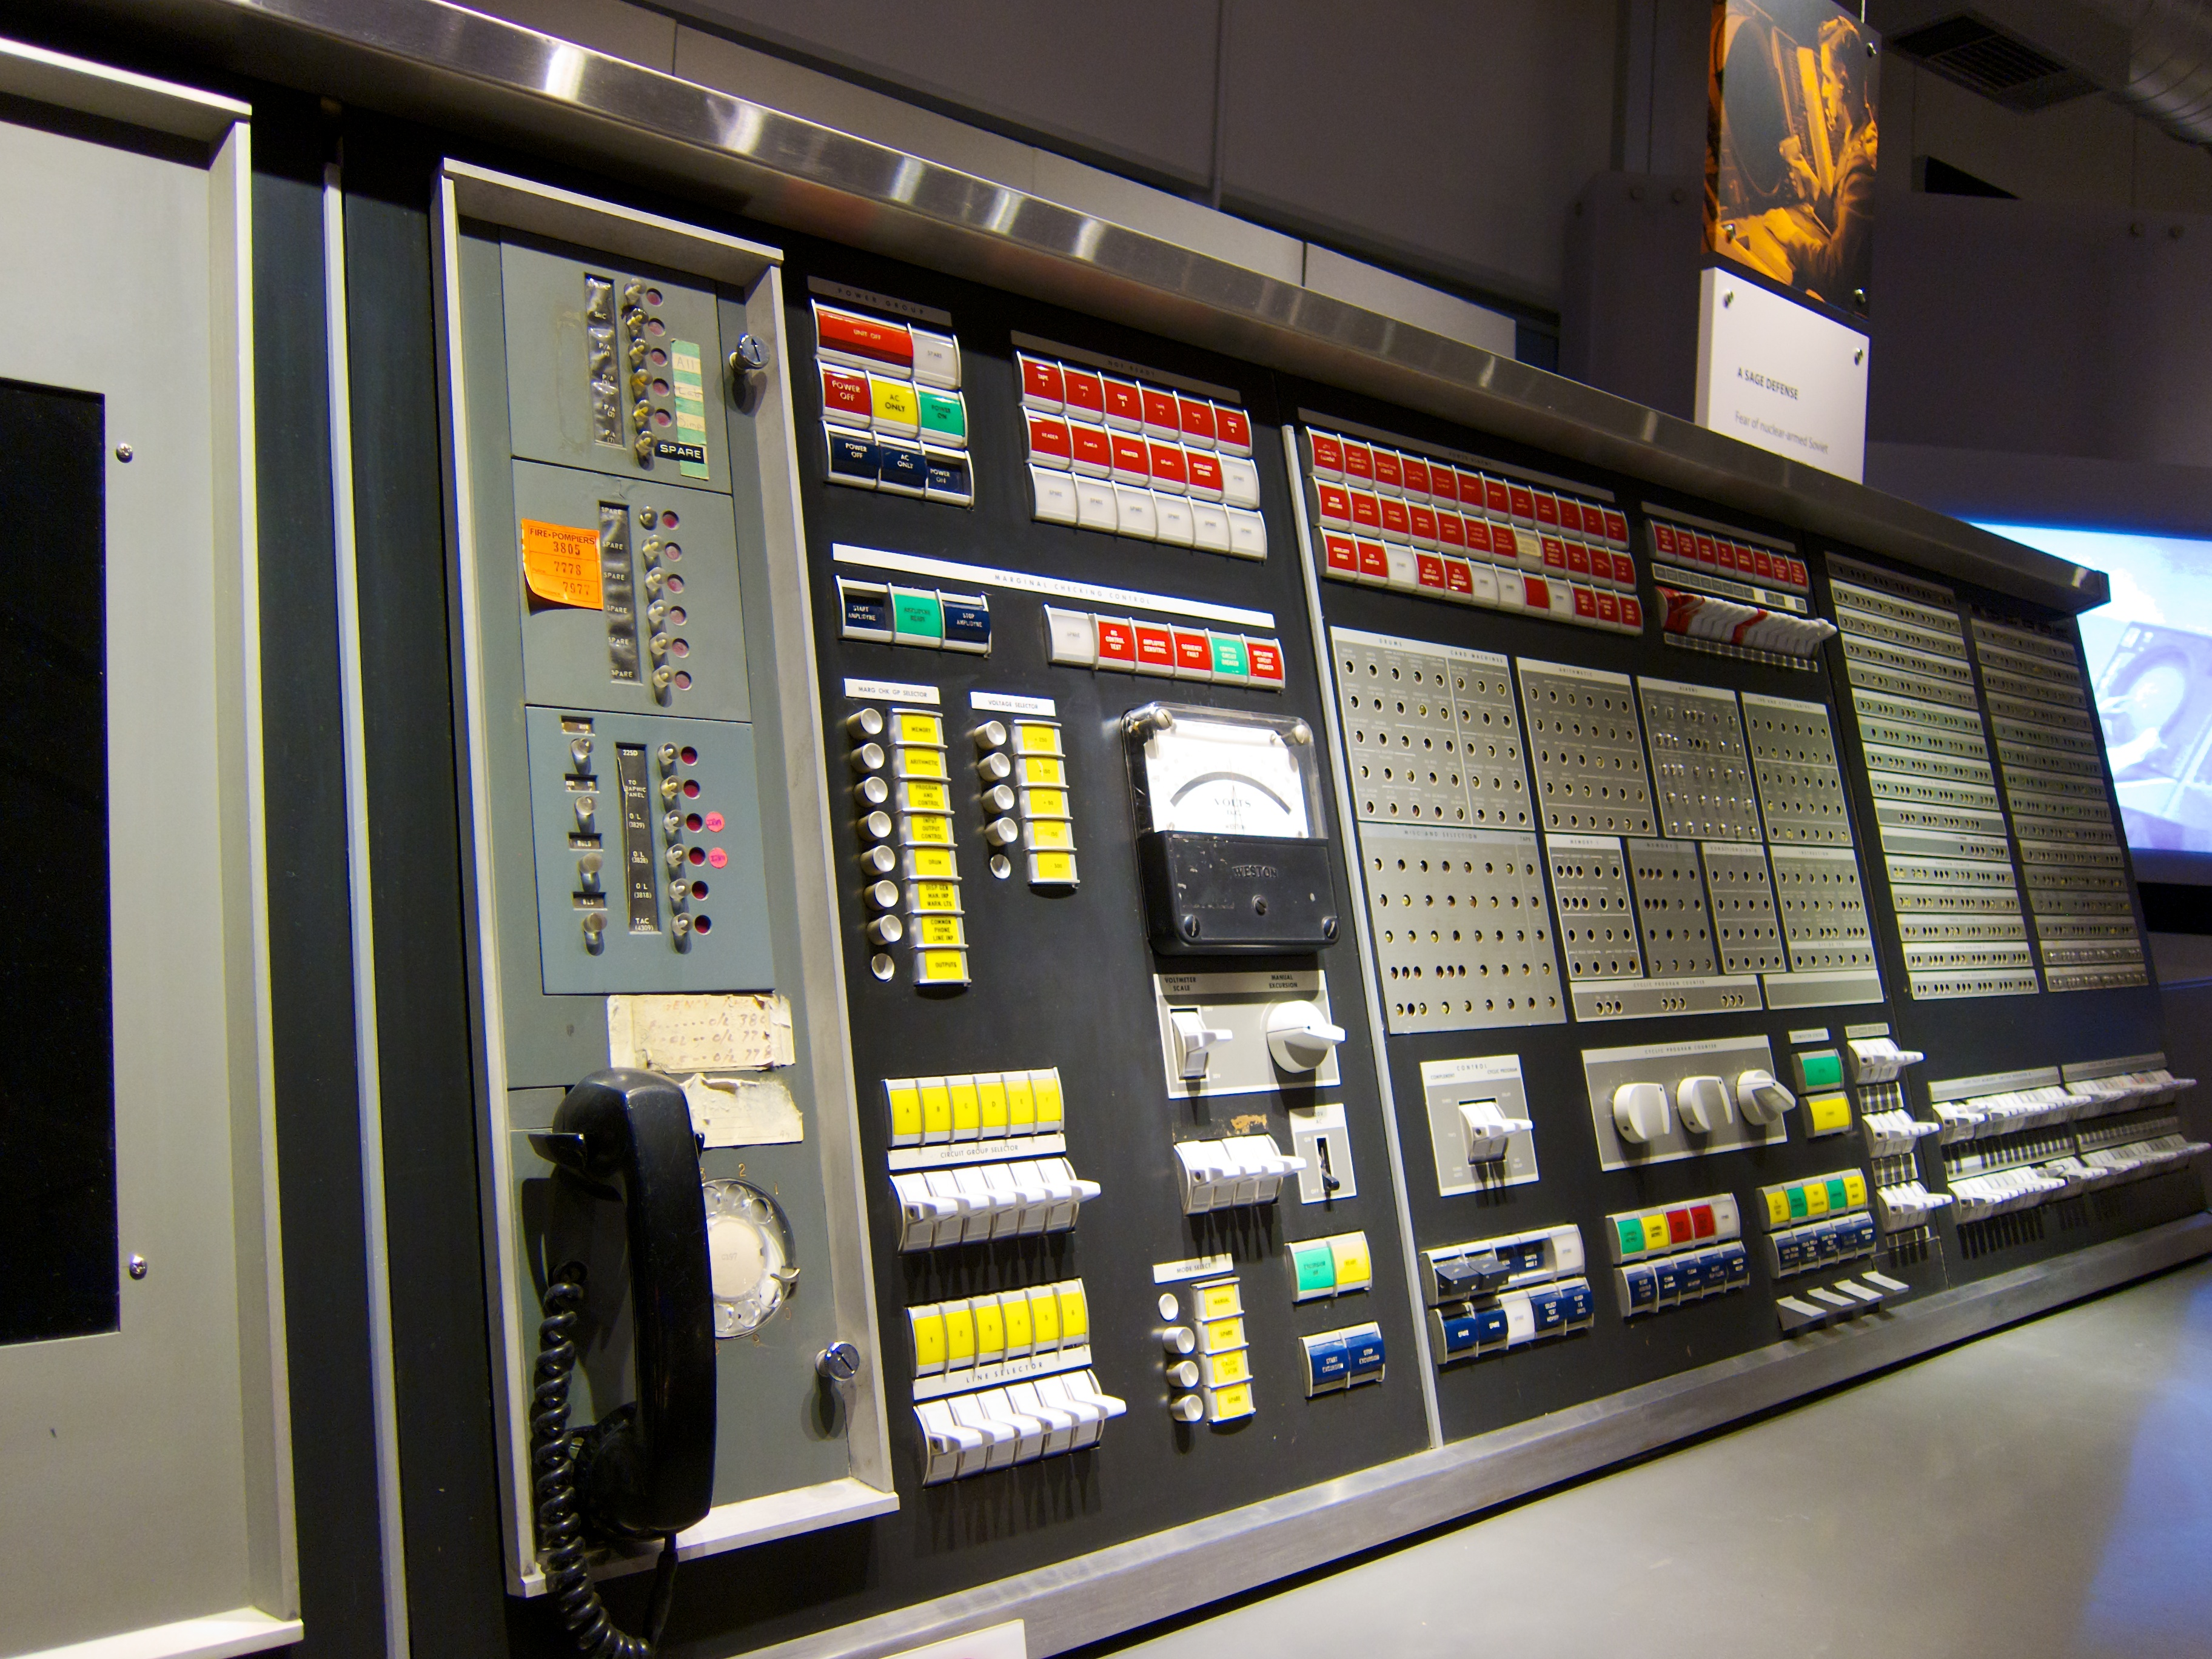 1000 images about consoles and control panels on pinterest - Console meaning in computer ...